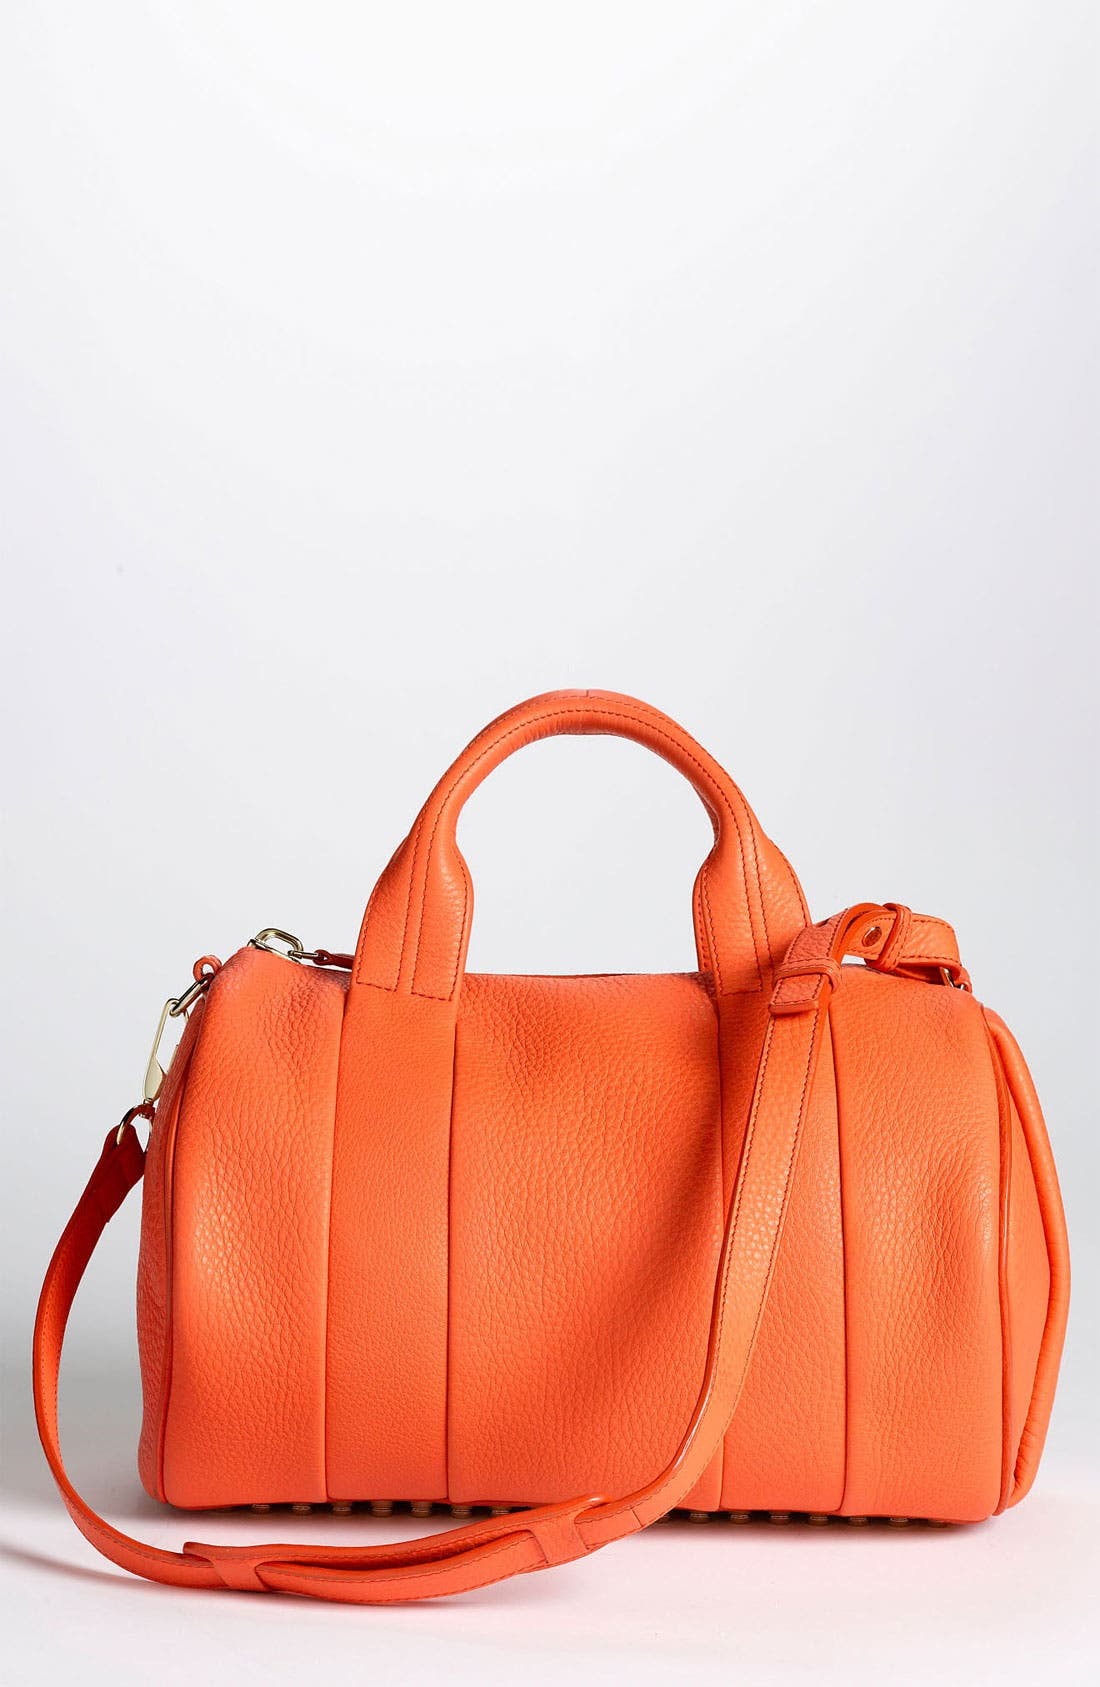 Alternate Image 1 Selected - Alexander Wang 'Rocco' Leather Satchel